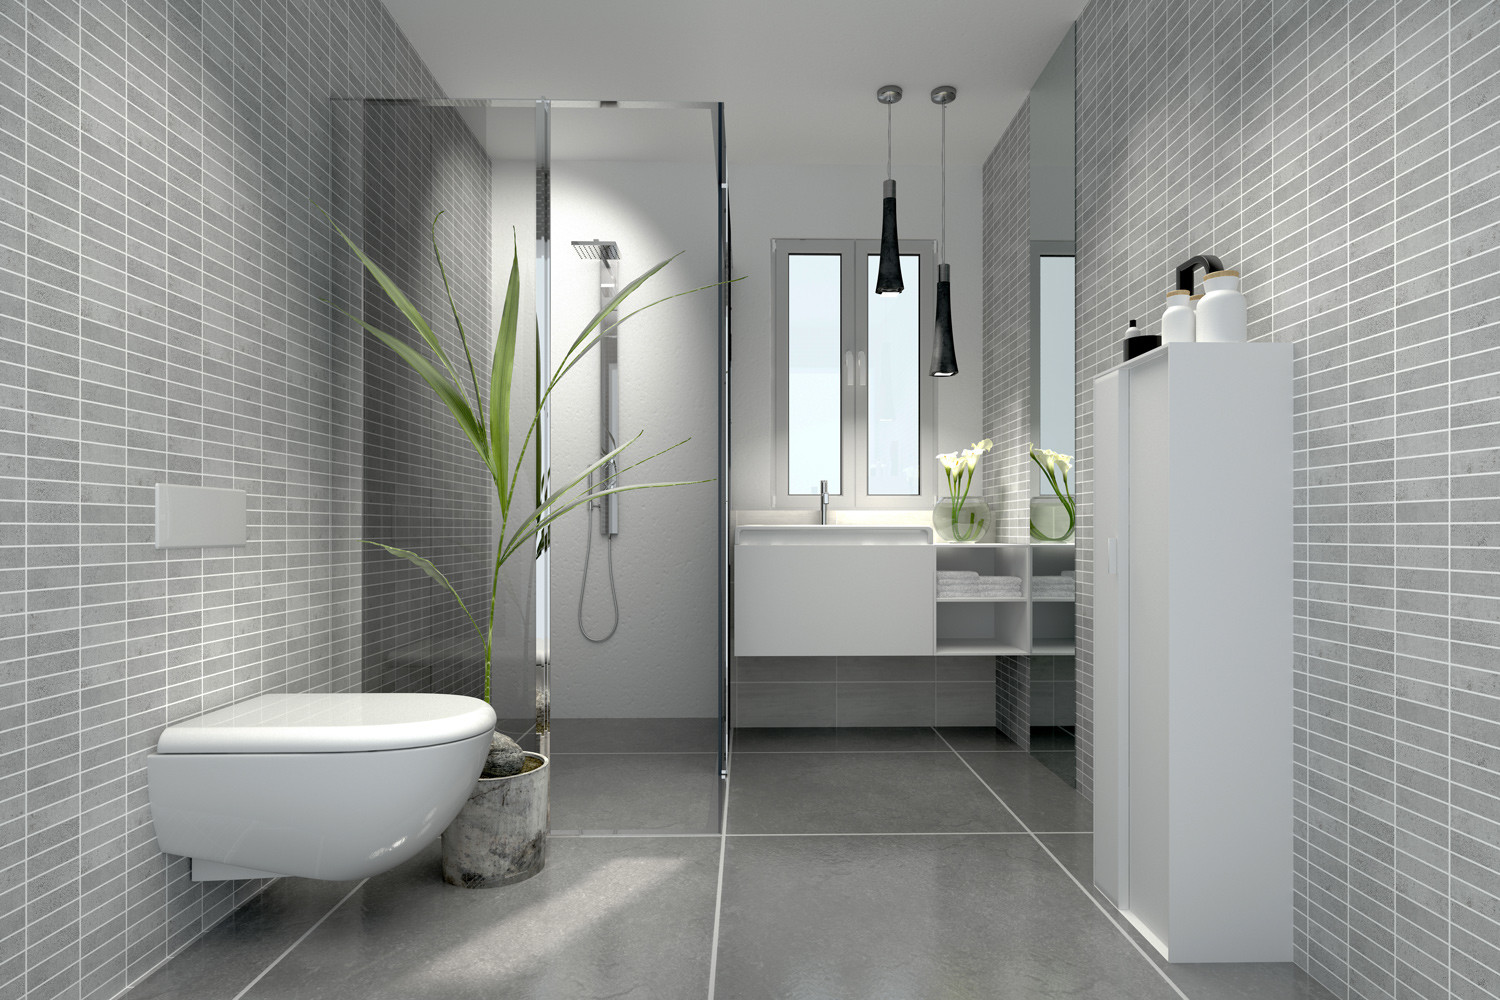 23 Bathroom Tiles Designs: Top 10 Inspiring Bathroom Tile Trends For 2019